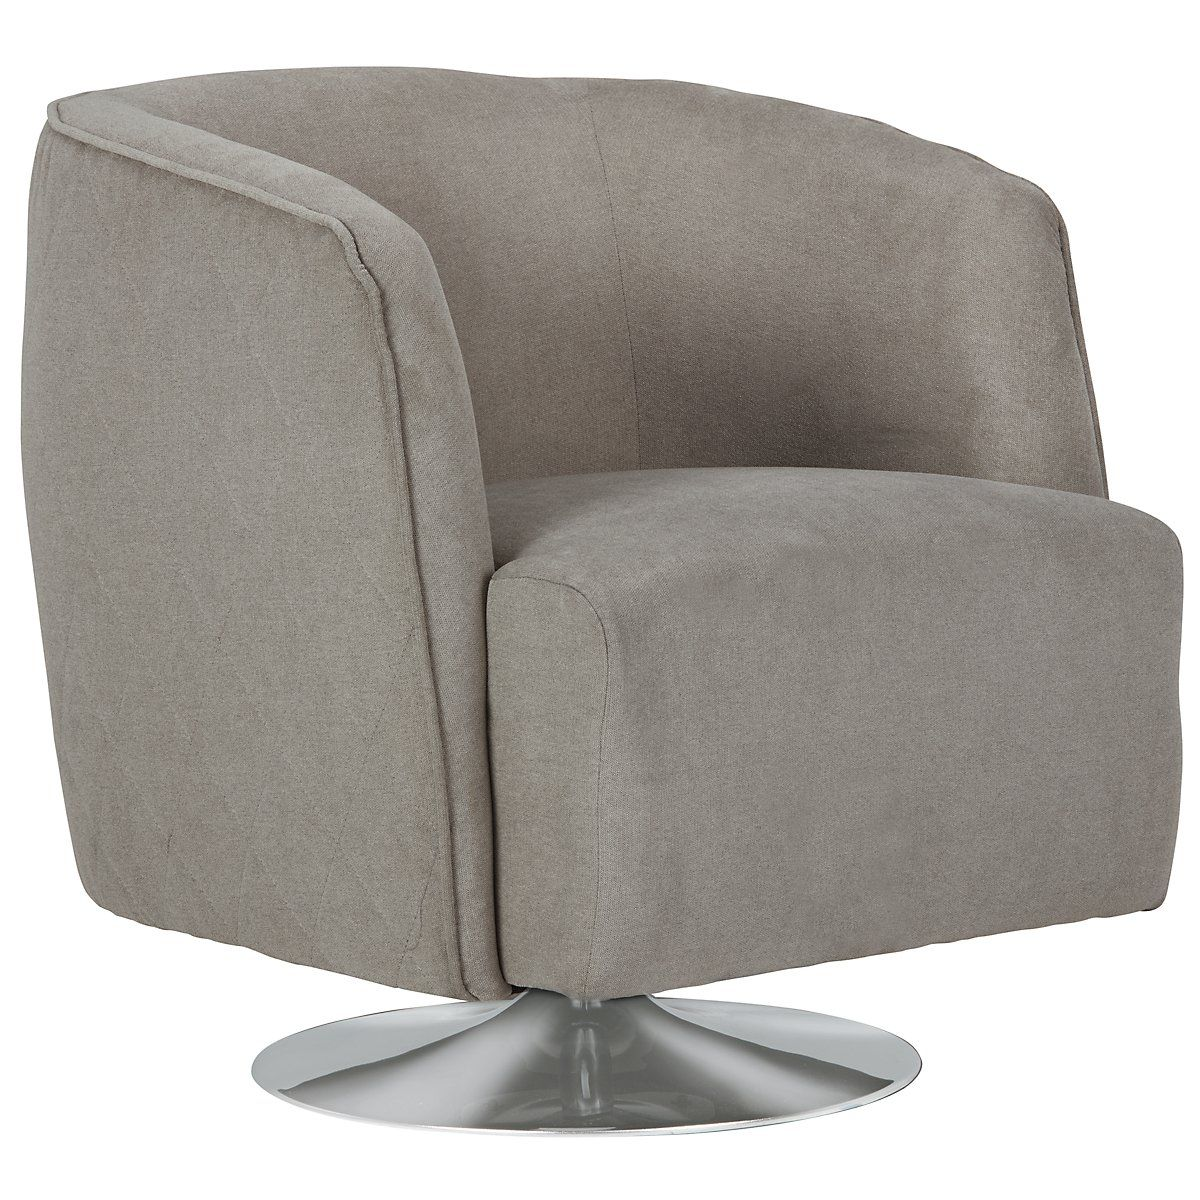 Baldwin gray microfiber swivel accent chair with images